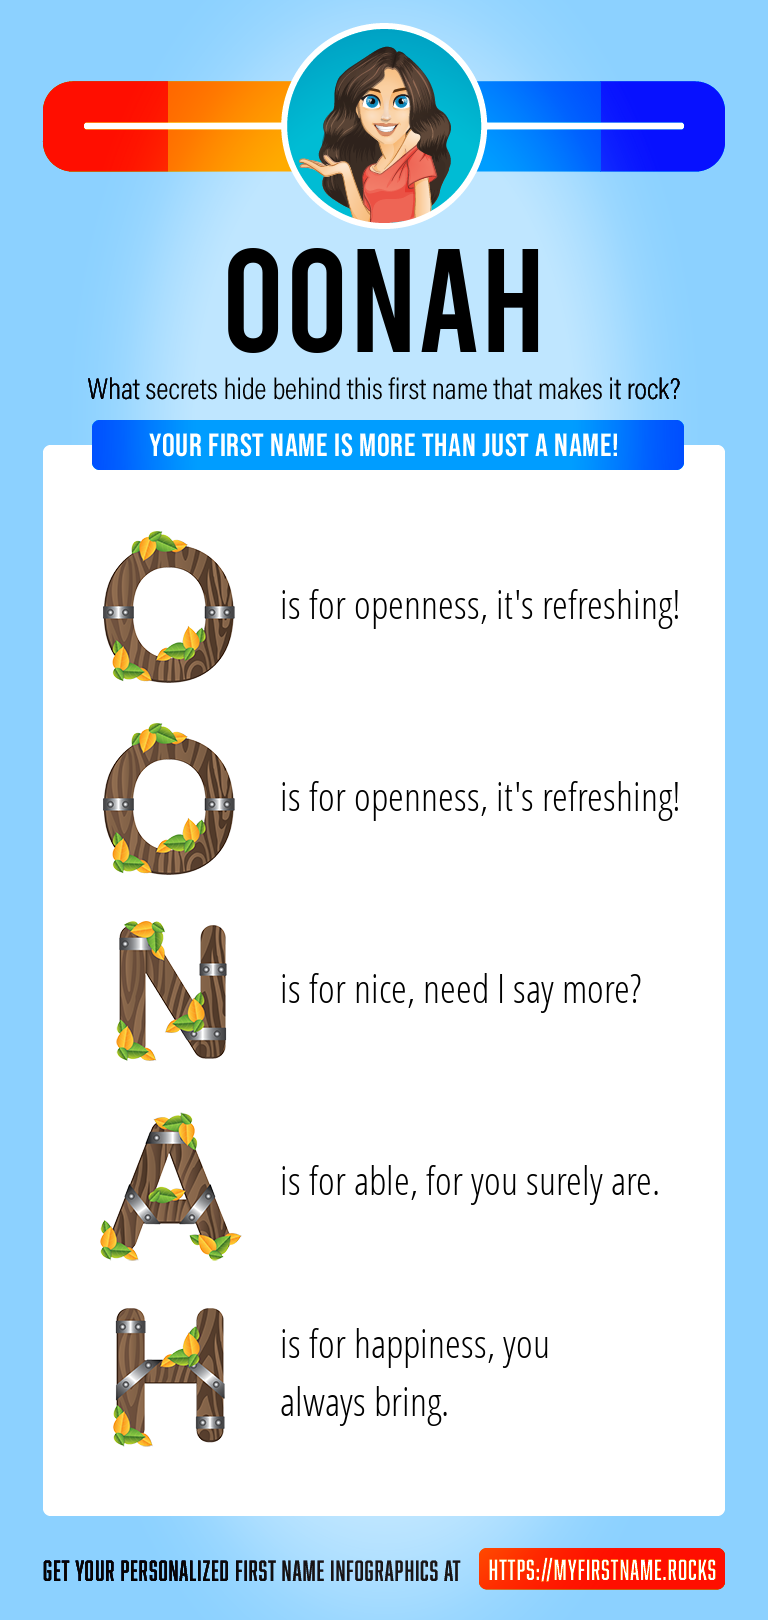 Oonah Infographics